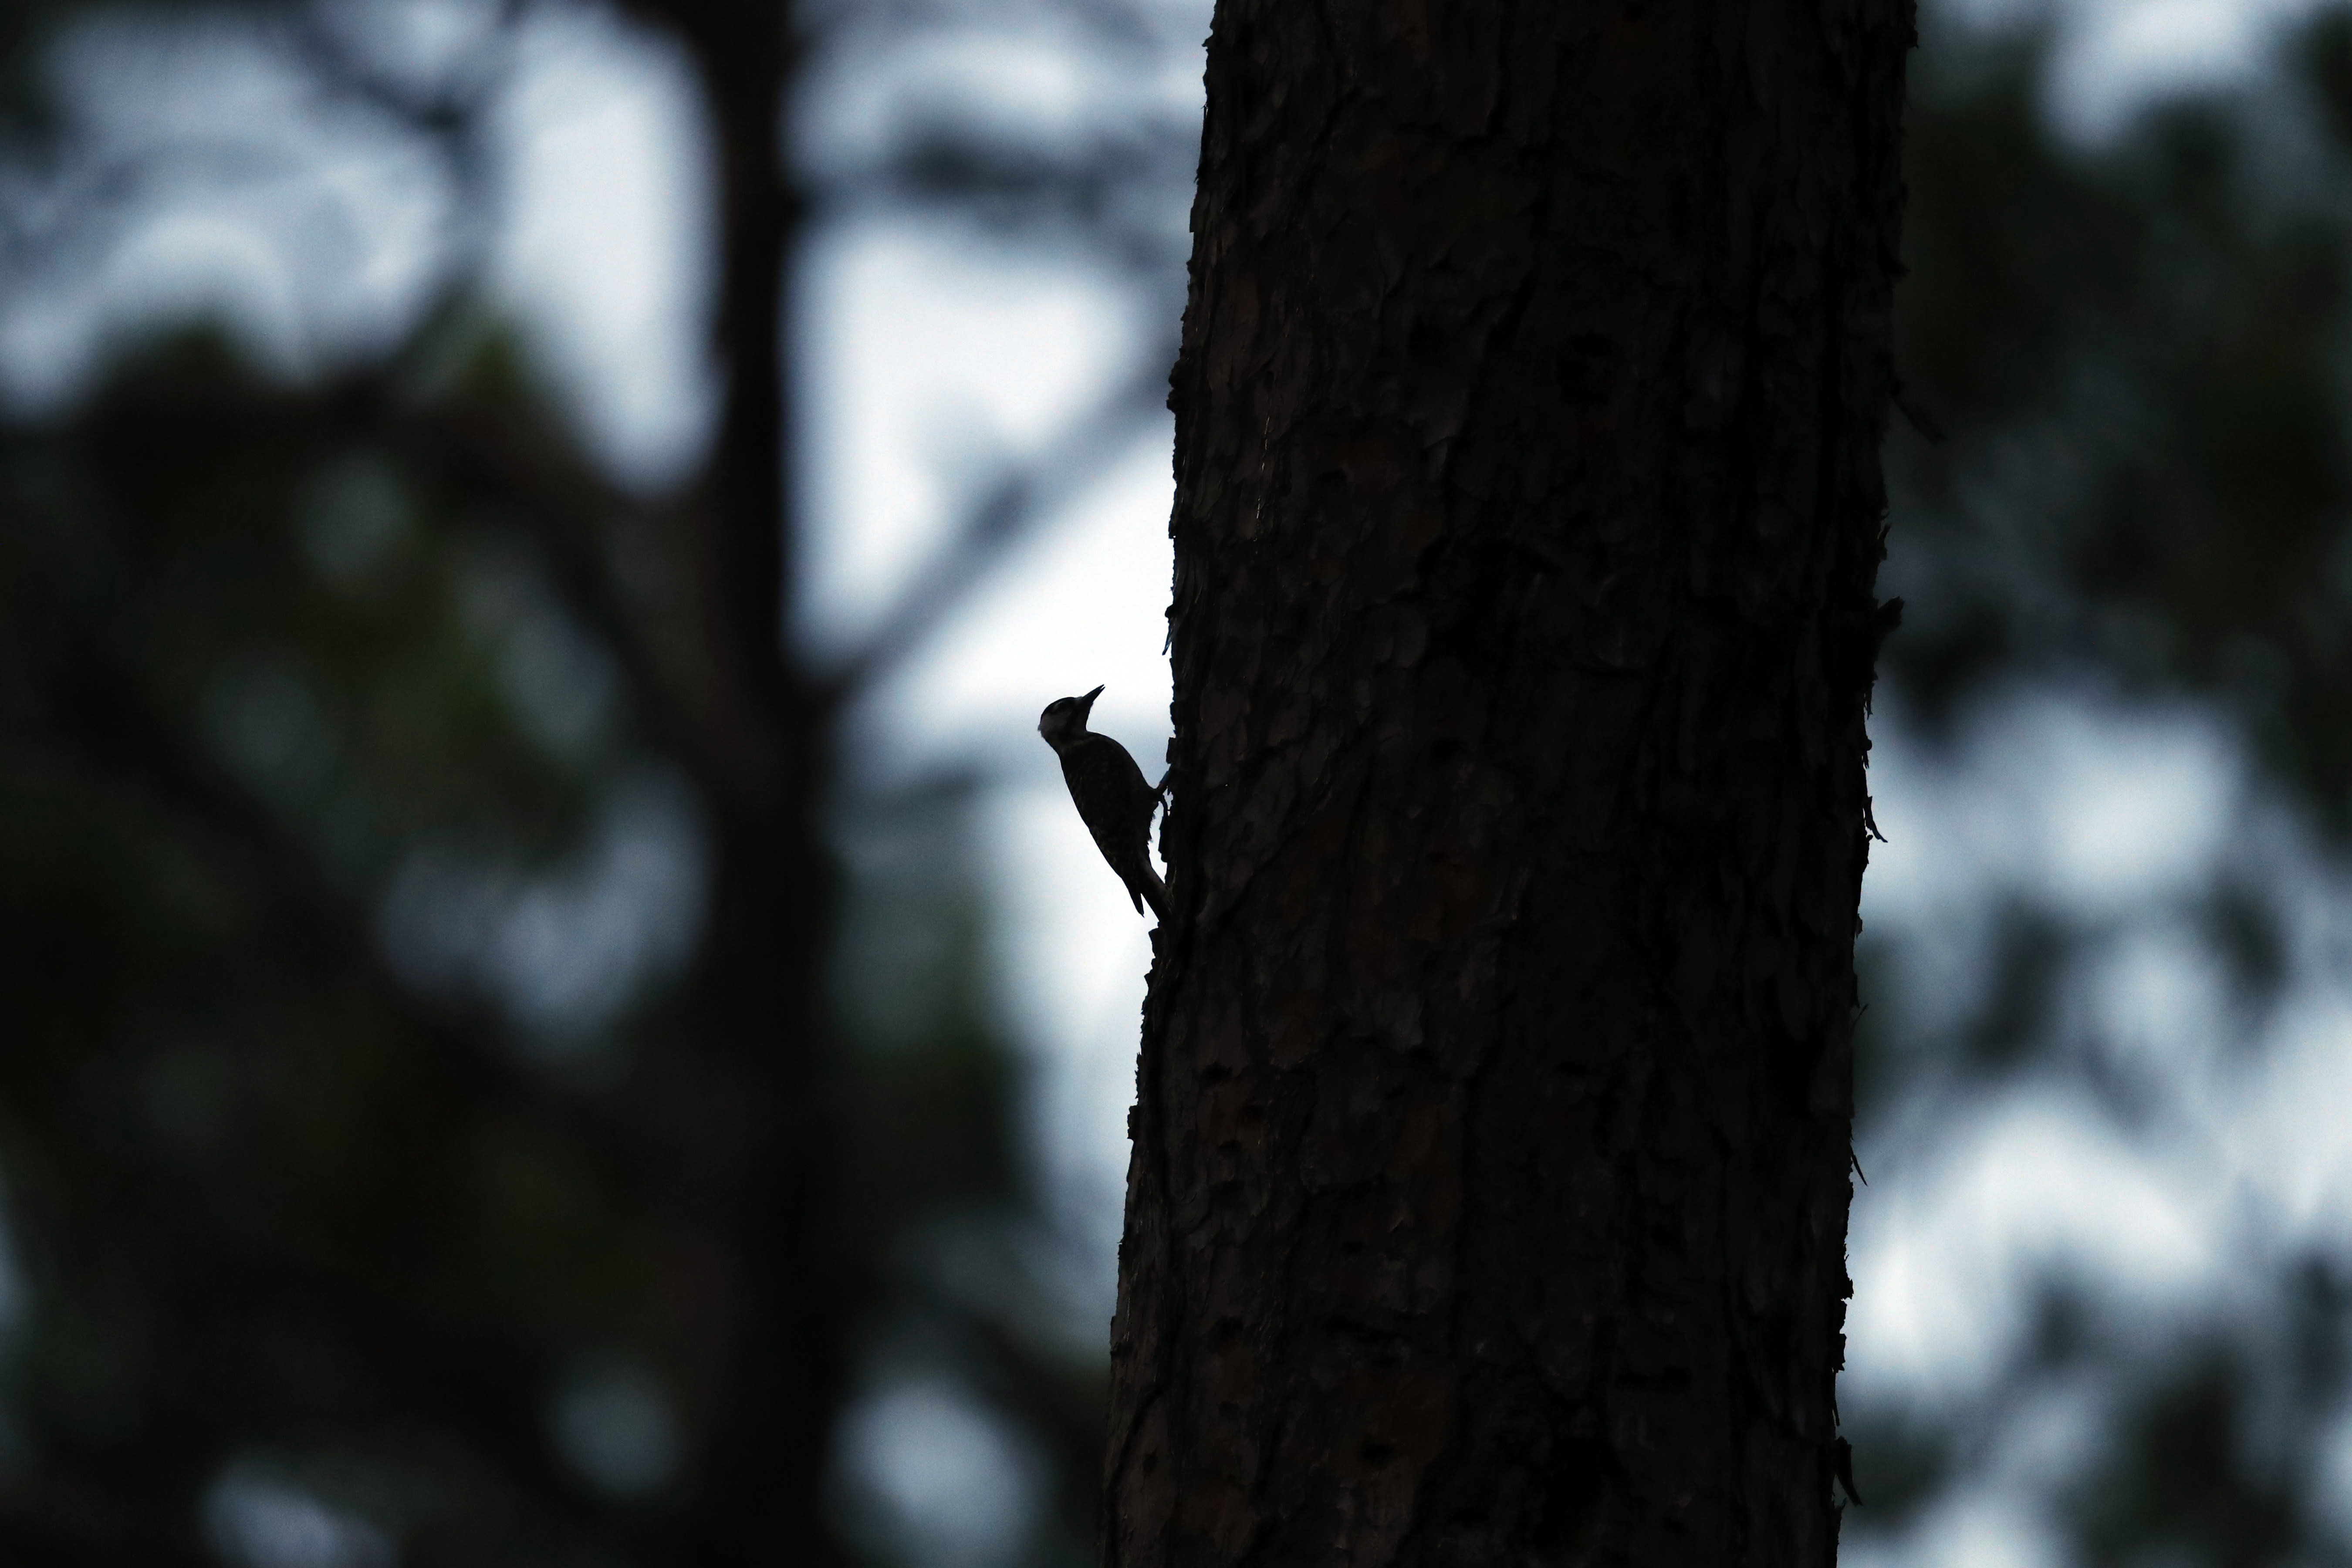 A red-cockaded woodpecker prepares to enter its roosting cavity for the night in a long leaf pine forest in Southern Pines, N.C., on Tuesday, July 30, 2019. The woodpecker was one of the first birds protected under the Endangered Species Act of 1973. (AP Photo/Robert F. Bukaty)